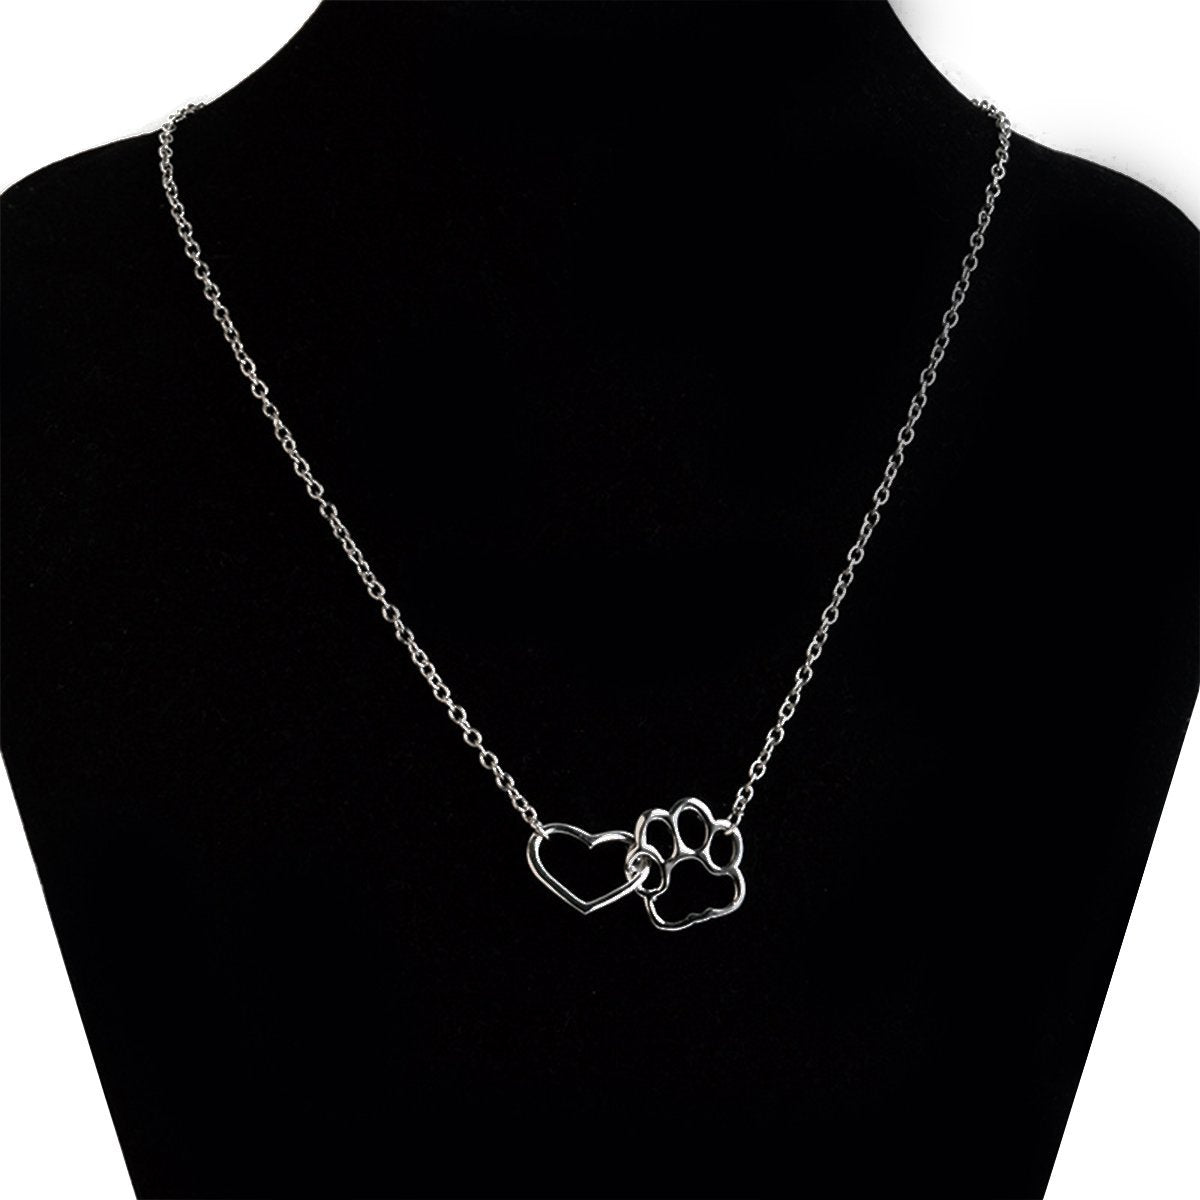 The Stylopedia necklace Pet Paw Love Necklace